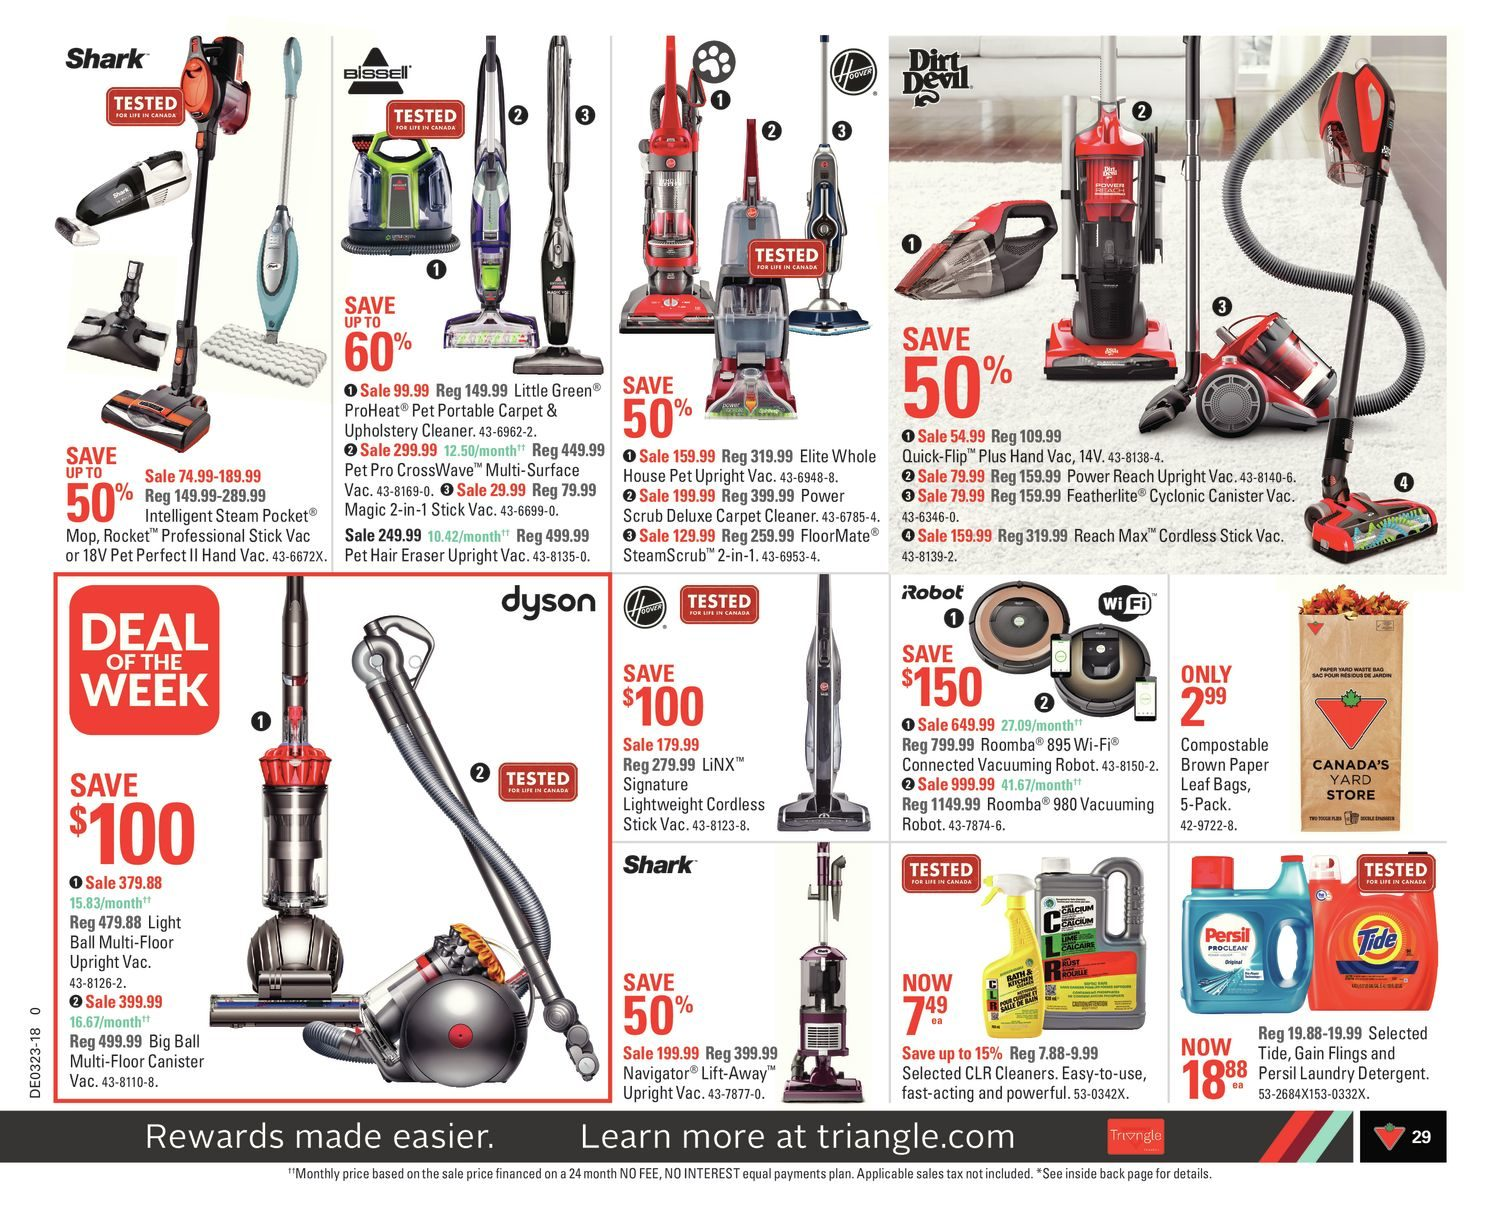 Canadian Tire Weekly Flyer Canadas Fathers Day Store Mini Bike Wiring Diagram 46cc Jun 1 7